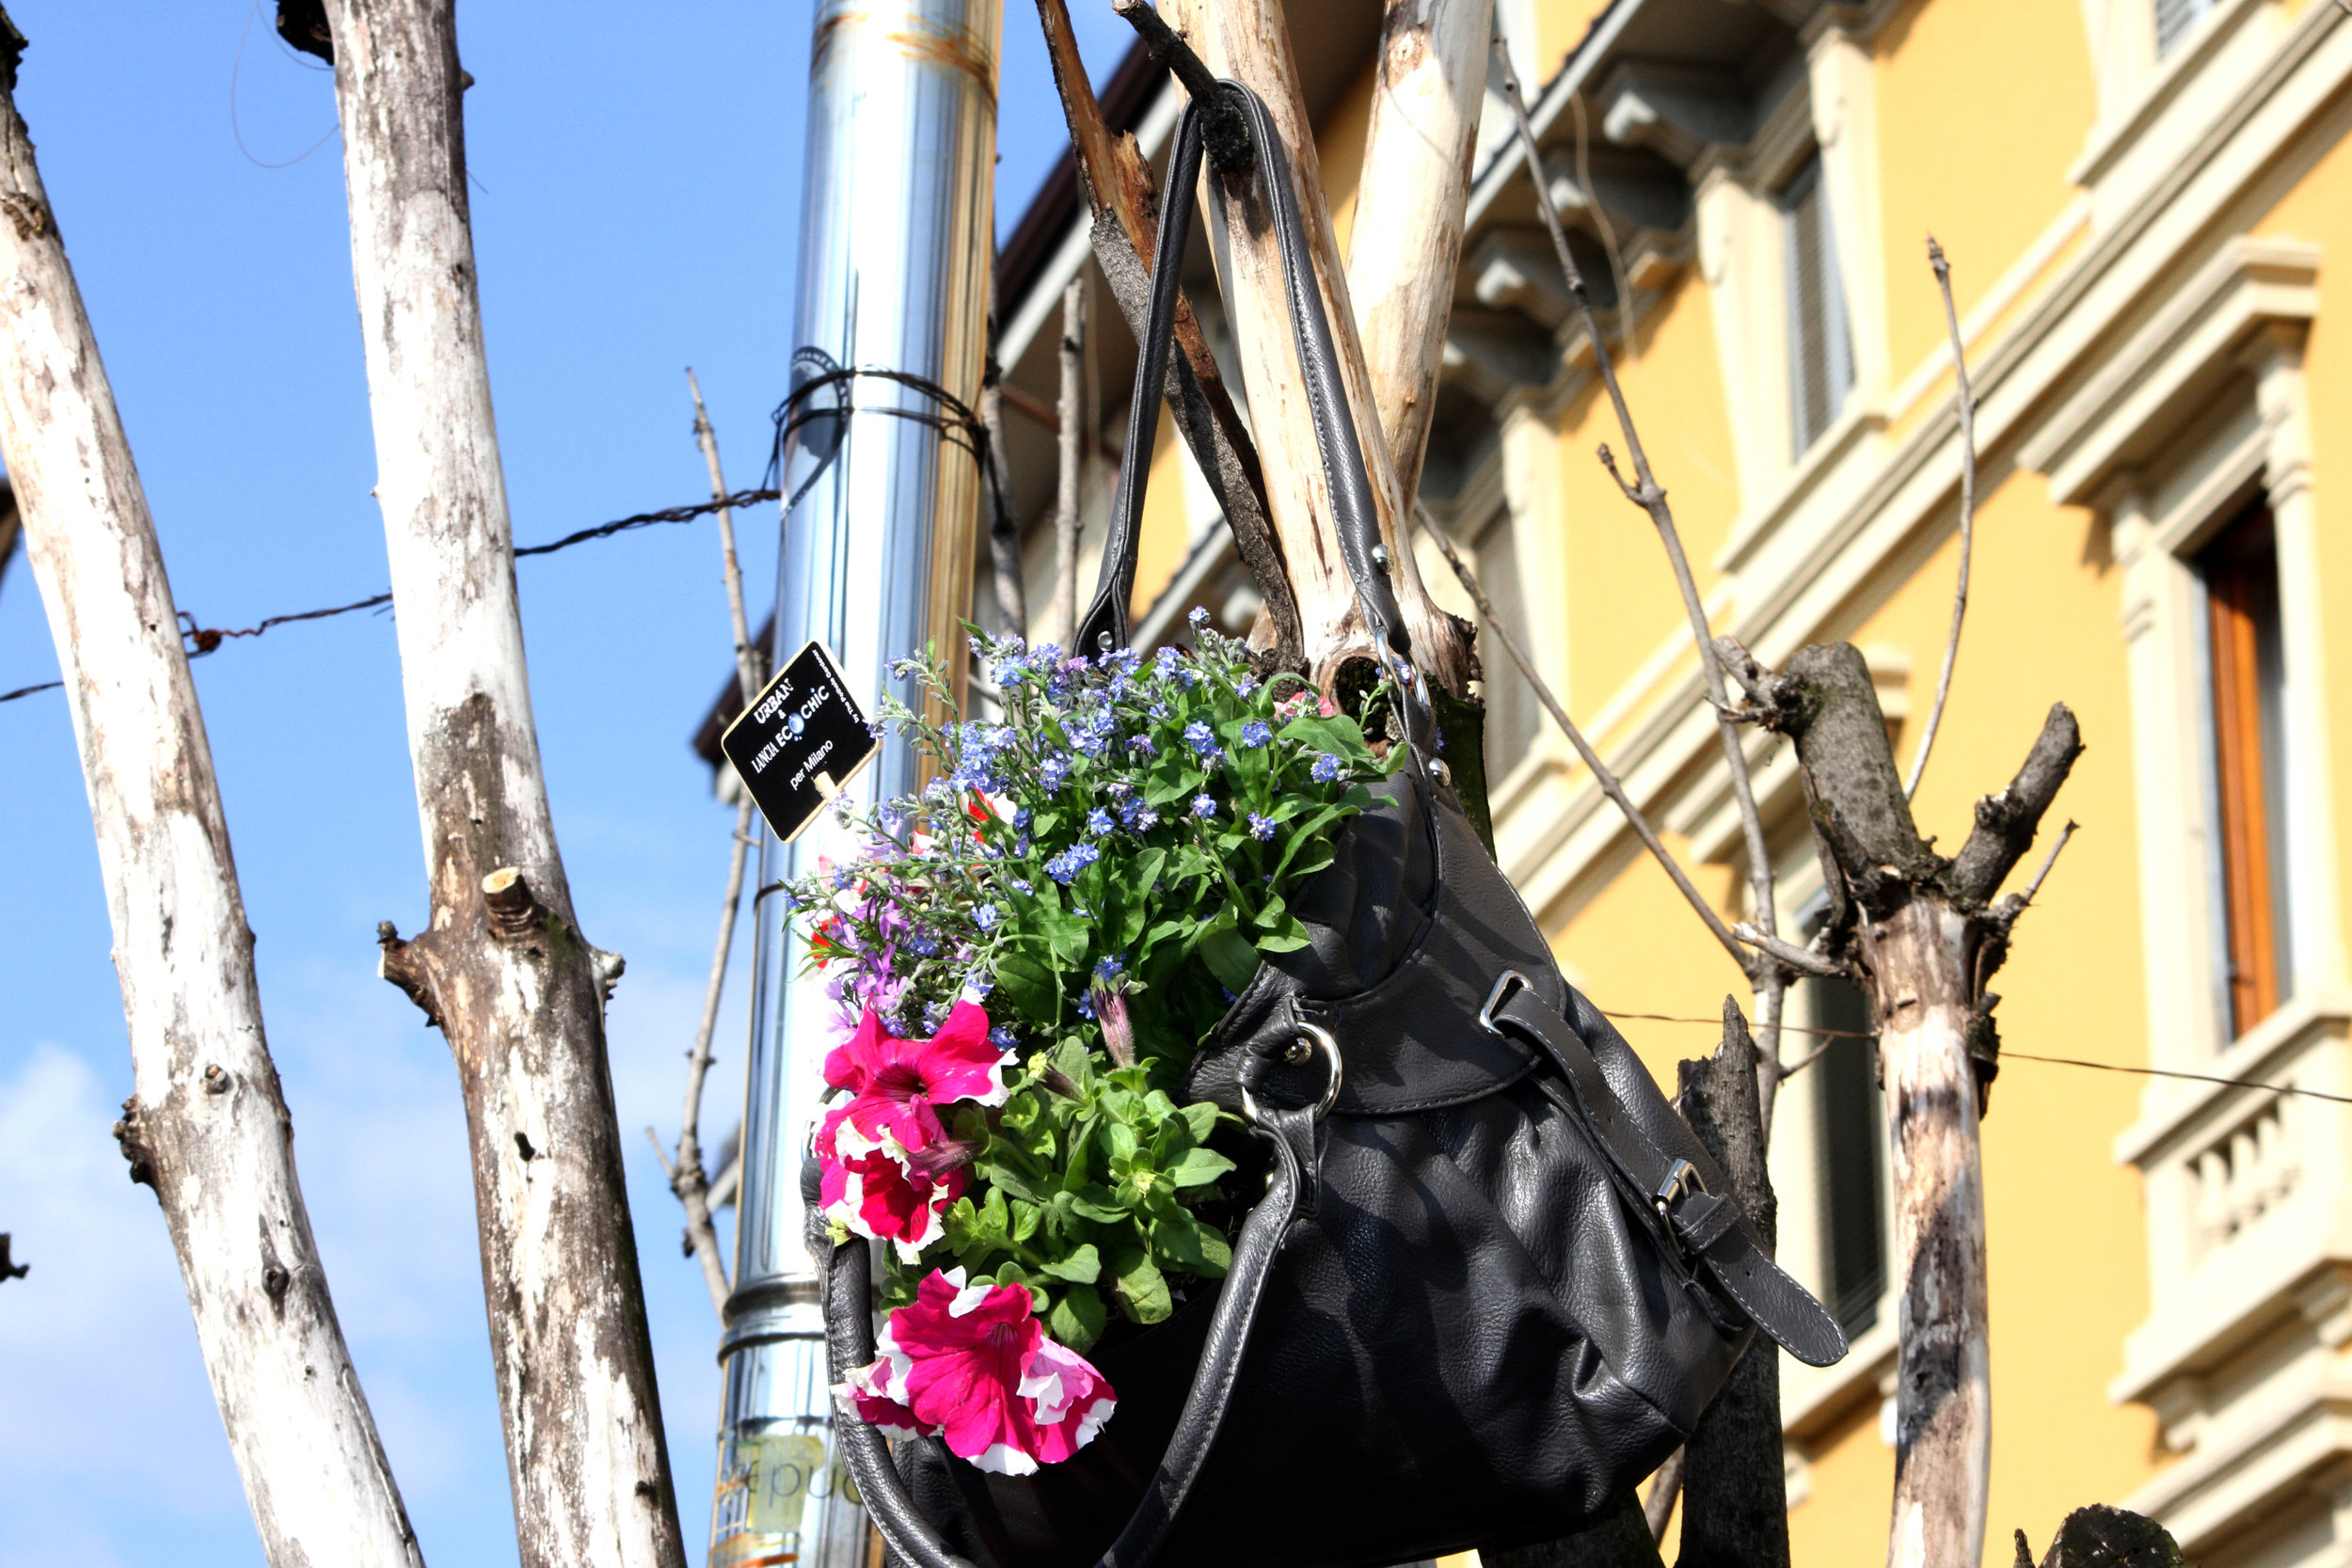 Pothole gardener at Milan Design Week garden in a bag